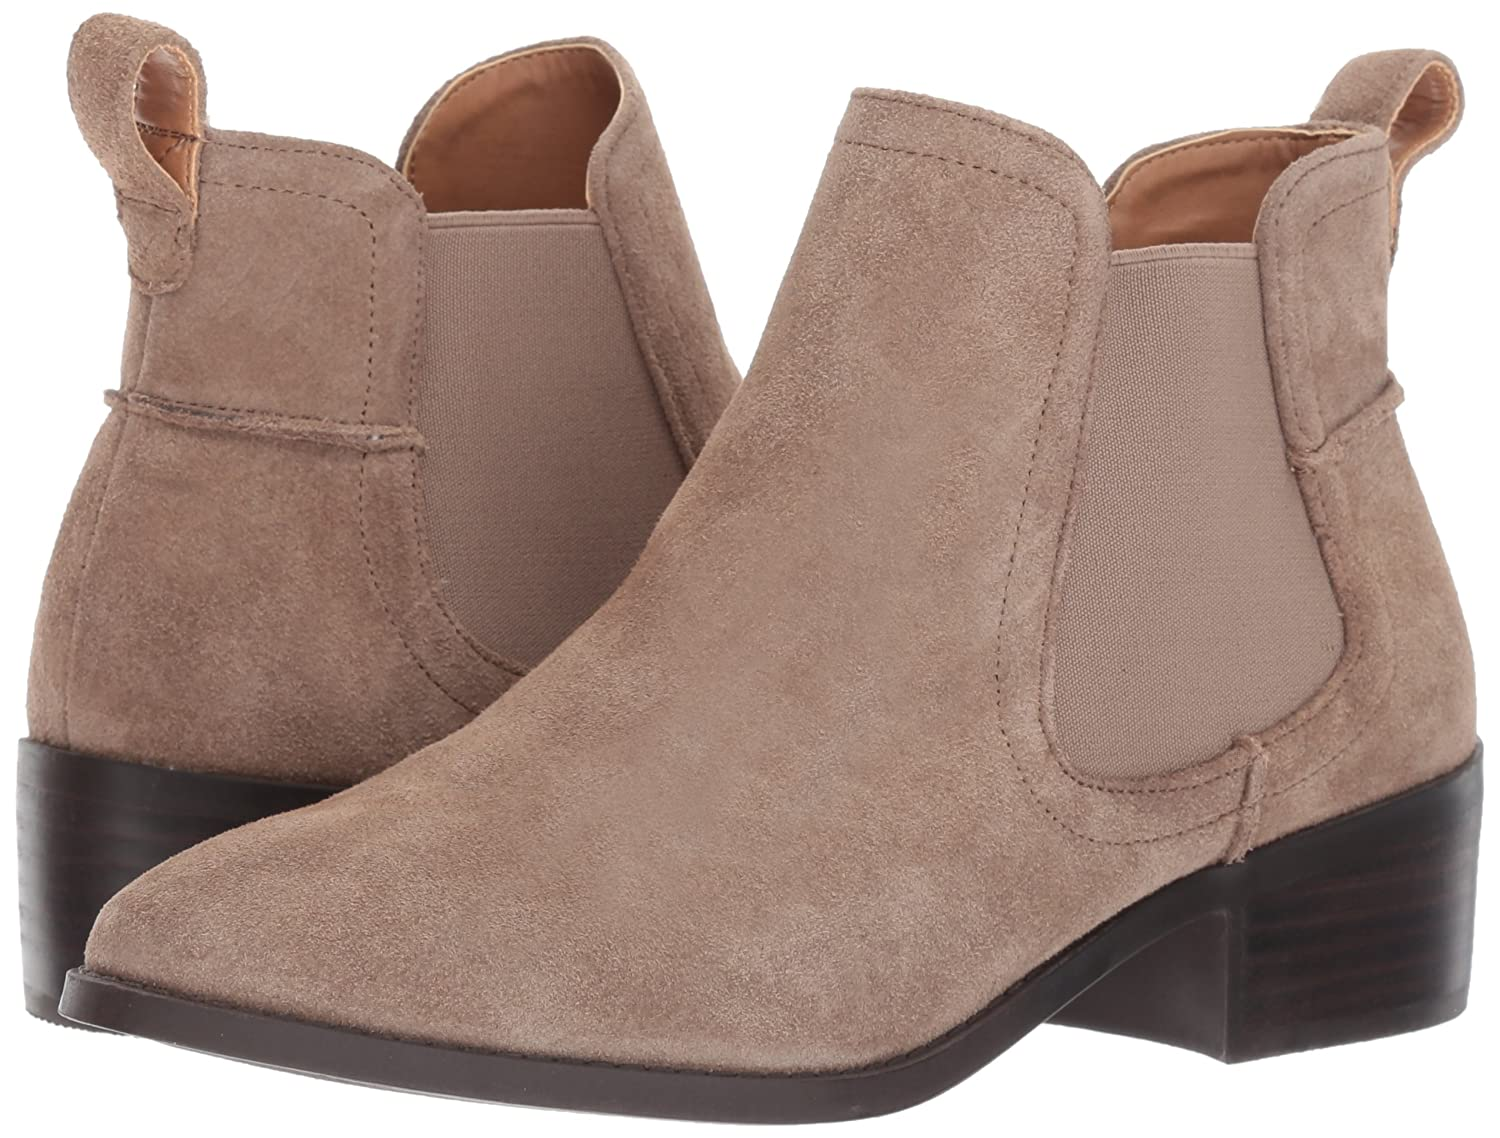 9442135a014 Steve Madden Womens DICEY Leather Closed Toe Ankle Chelsea Boots   Amazon.co.uk  Shoes   Bags